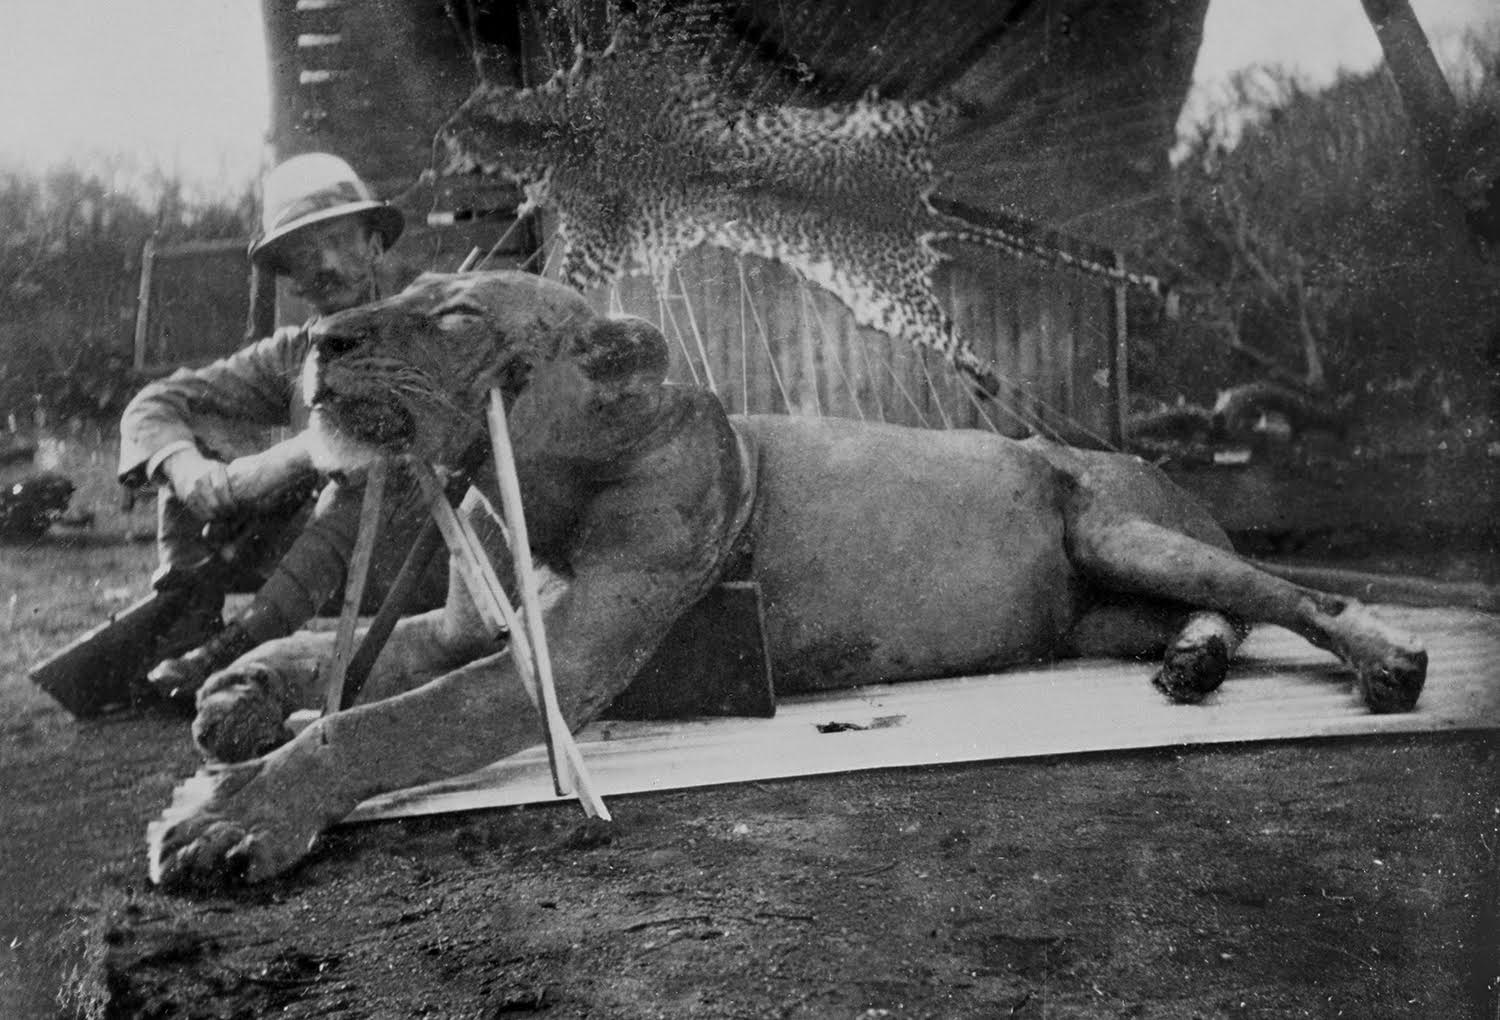 John Patterson with one of the man-eating lions of Tsavo. Credit: The Field Museum